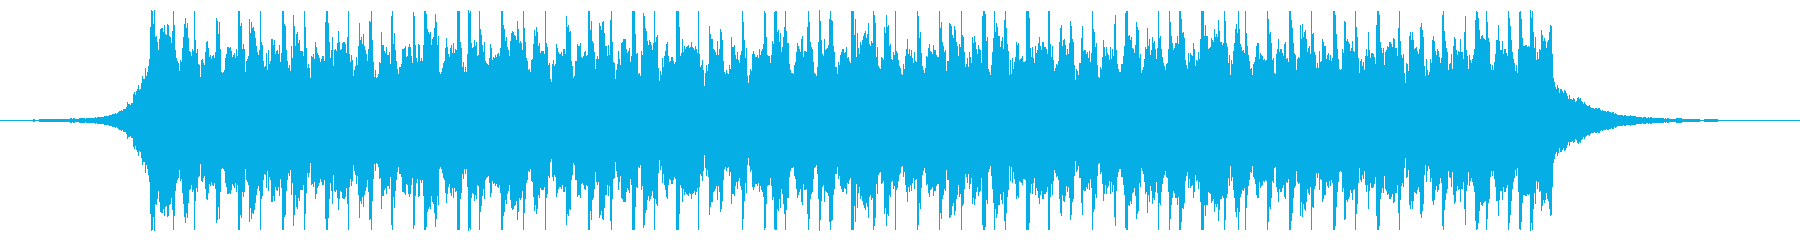 News / News / Corporate VP's reproduced waveform